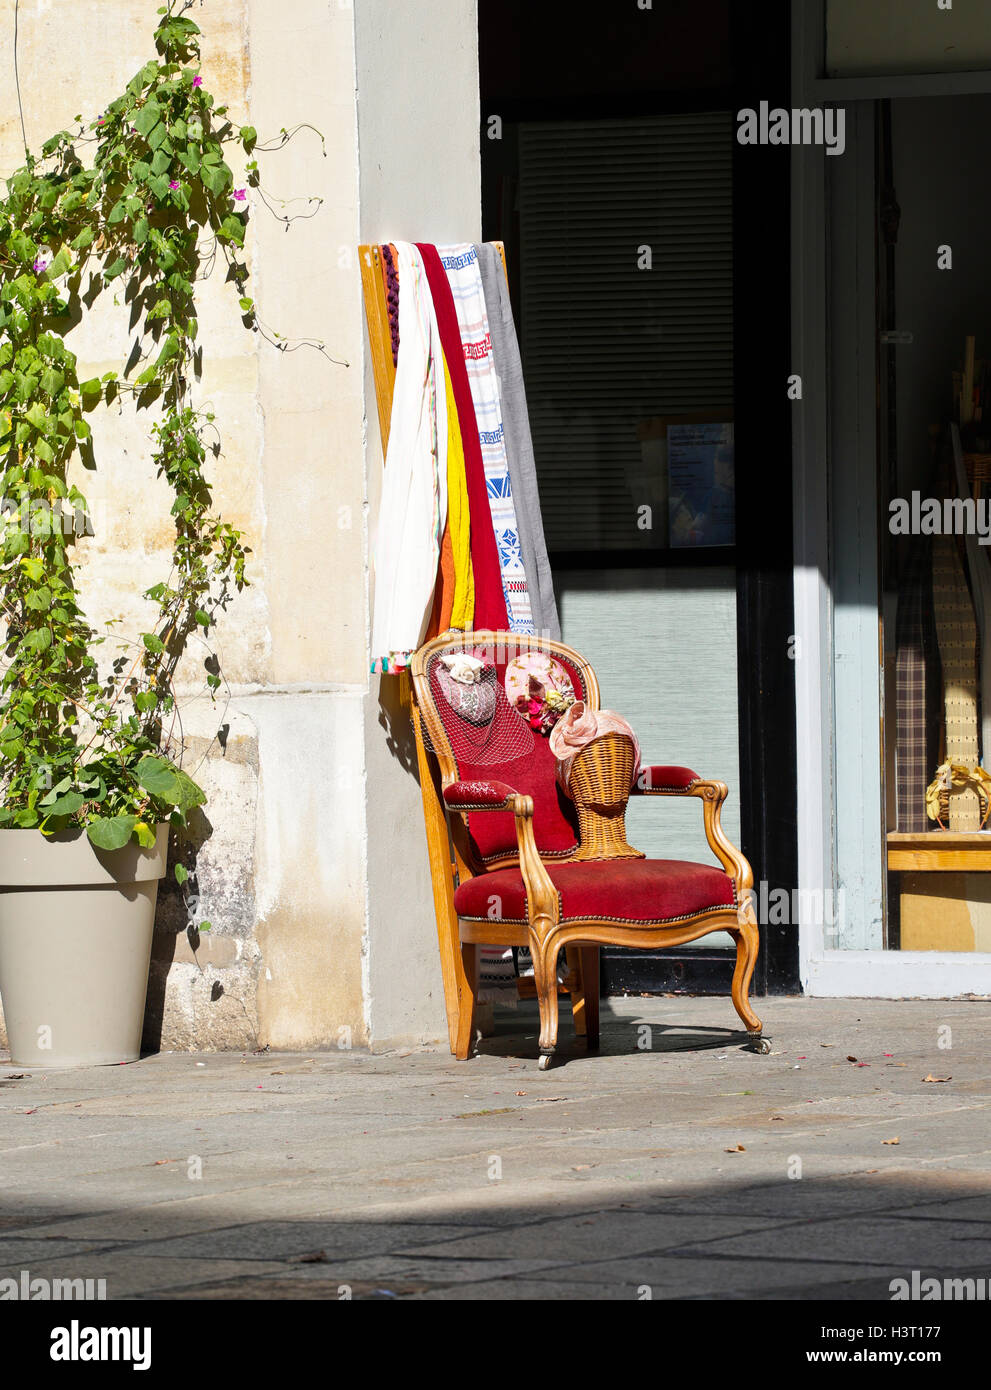 Armchair with hats on a sidewalk - Stock Image